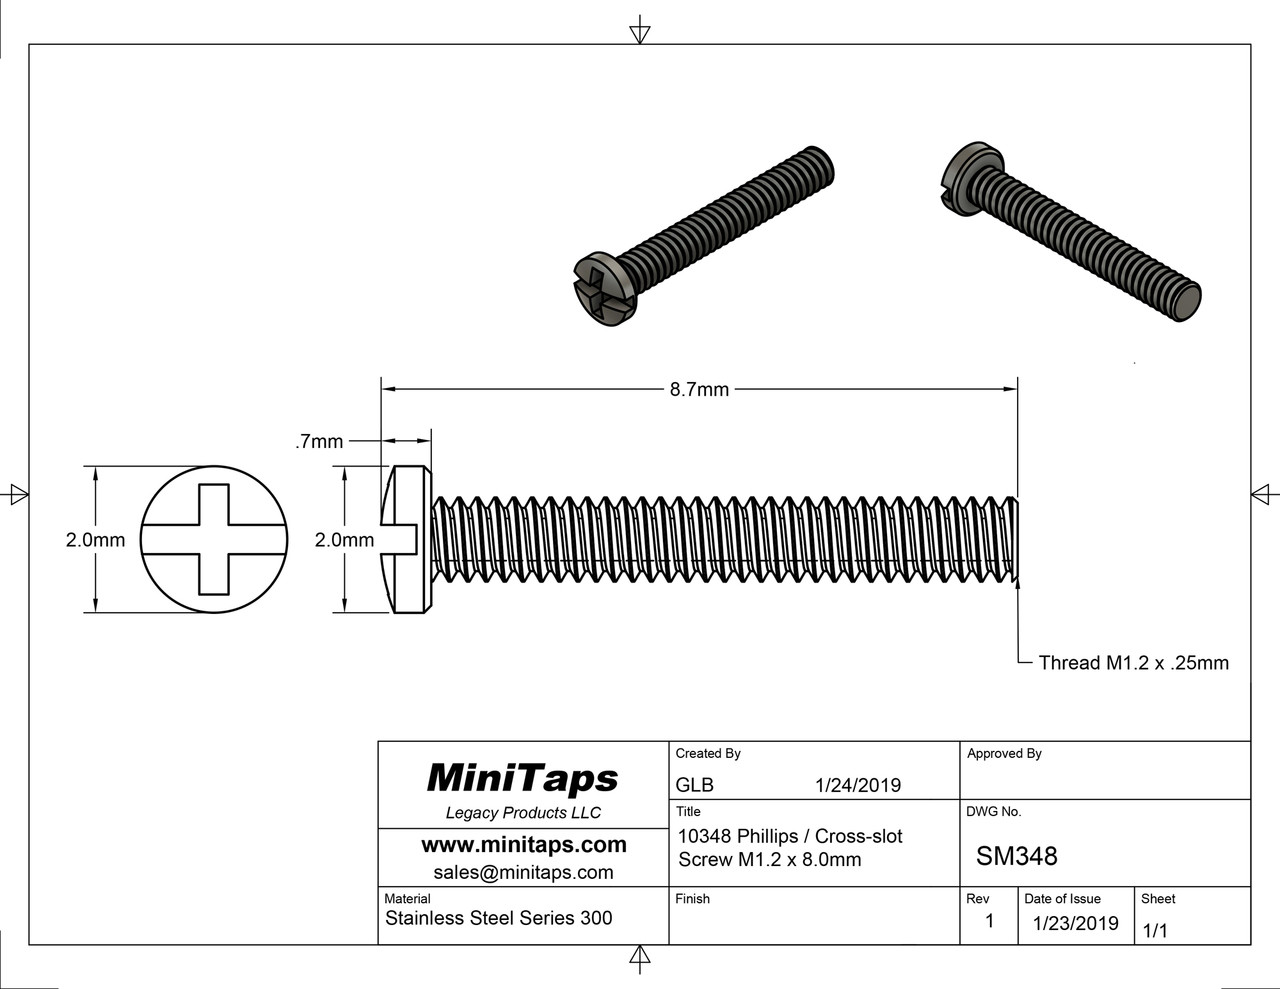 Thread M1.2  also 1.20UNM pitch .25mm Shank length 8mm Machine Screw Pan /Cheese Head (modified) with Philips X-Slot drive overall length 8.7mm stainless steel in 100 count package, Please note for orders ten units and above  (1,000 pieces) packaged in bulk plastic bag.